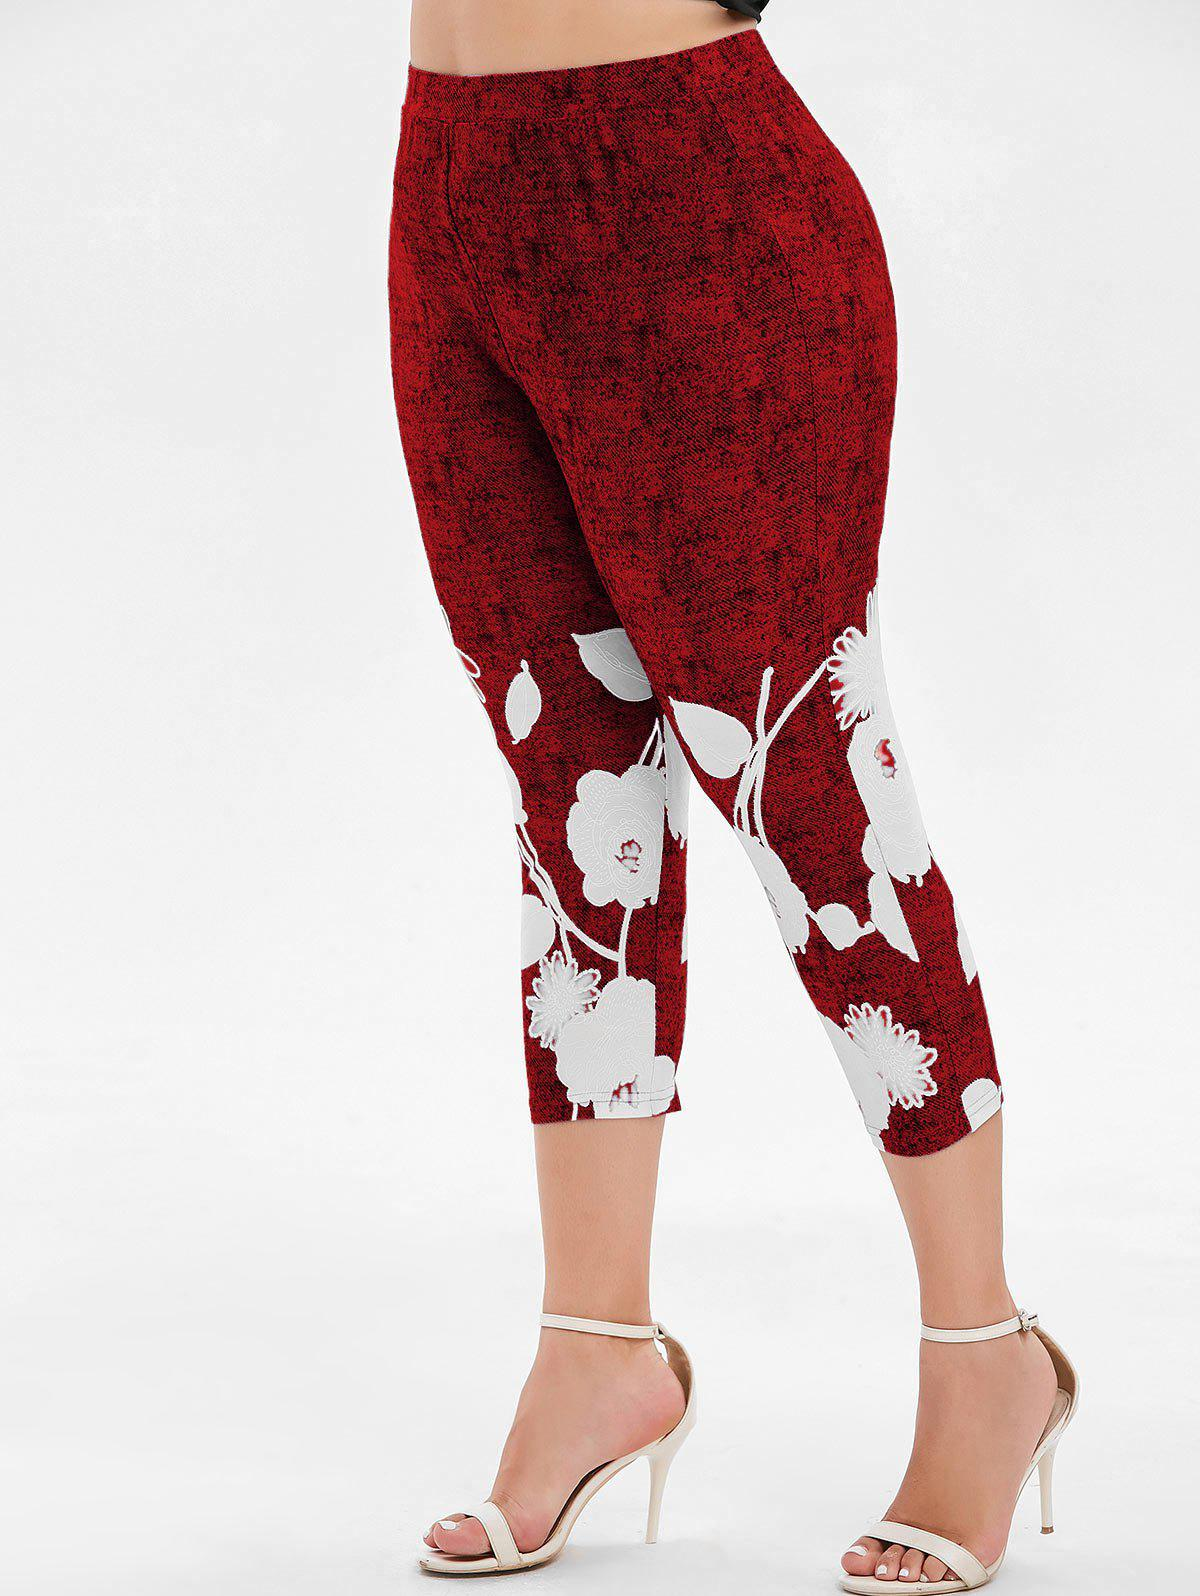 Plus Size High Waist Printed Capri Leggings - RED WINE 3X